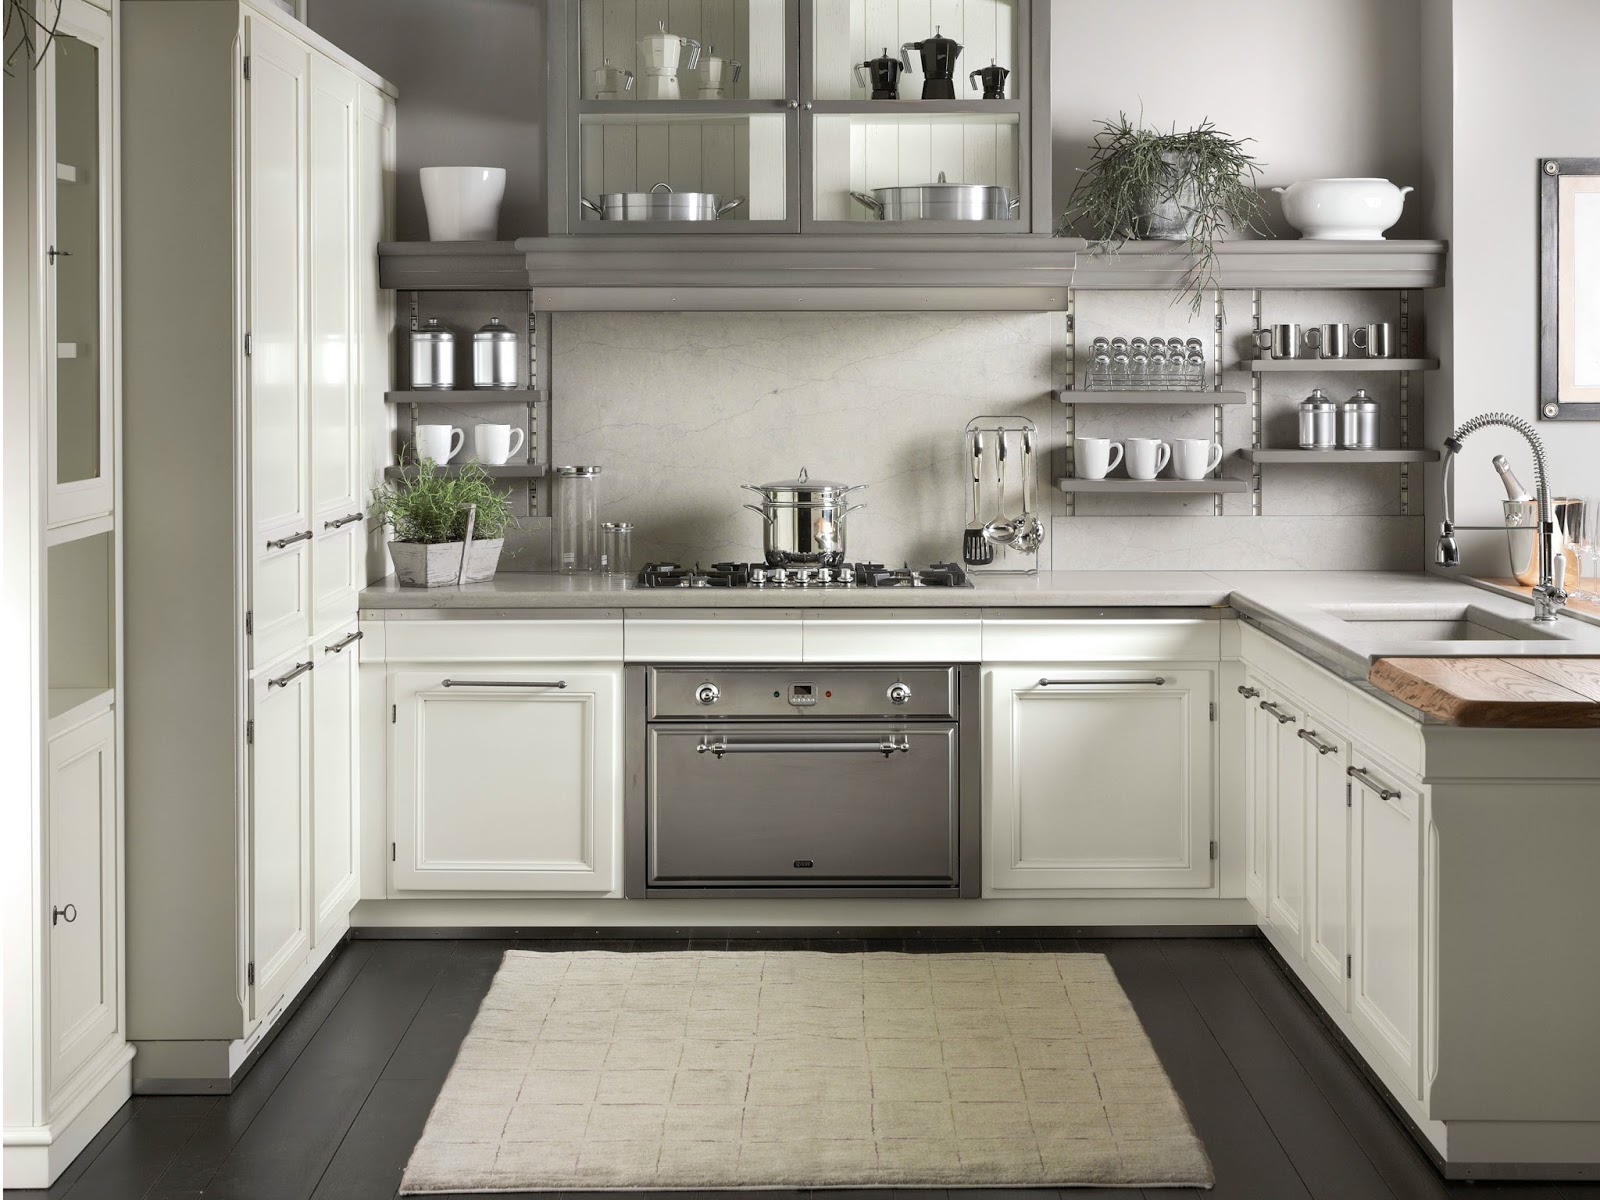 Timeless Kitchen 15 exclusive timeless kitchen cabinets, designs and ideas